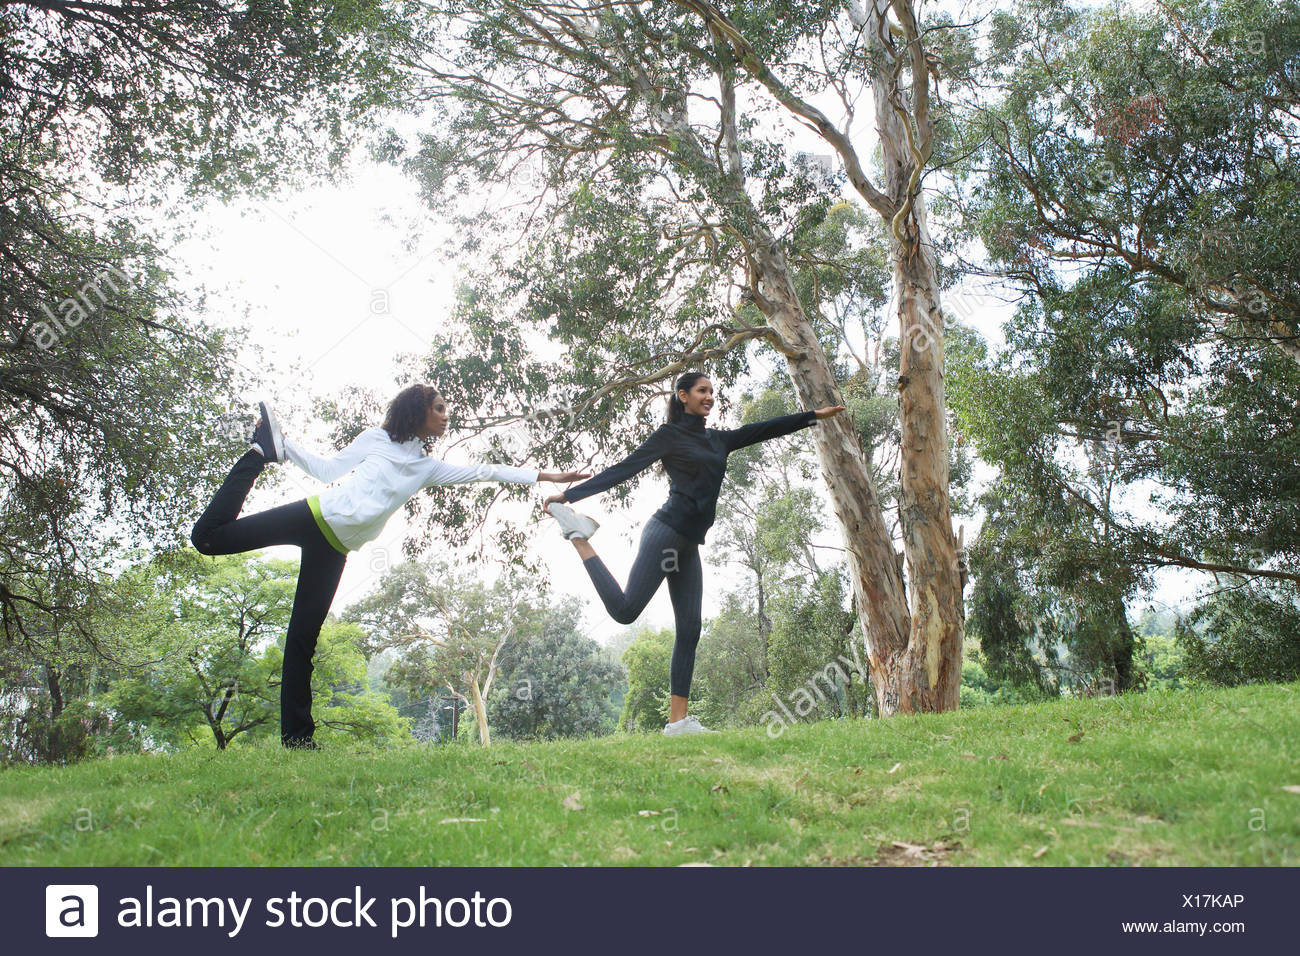 Mid adult and young woman stretching in park - Stock Image